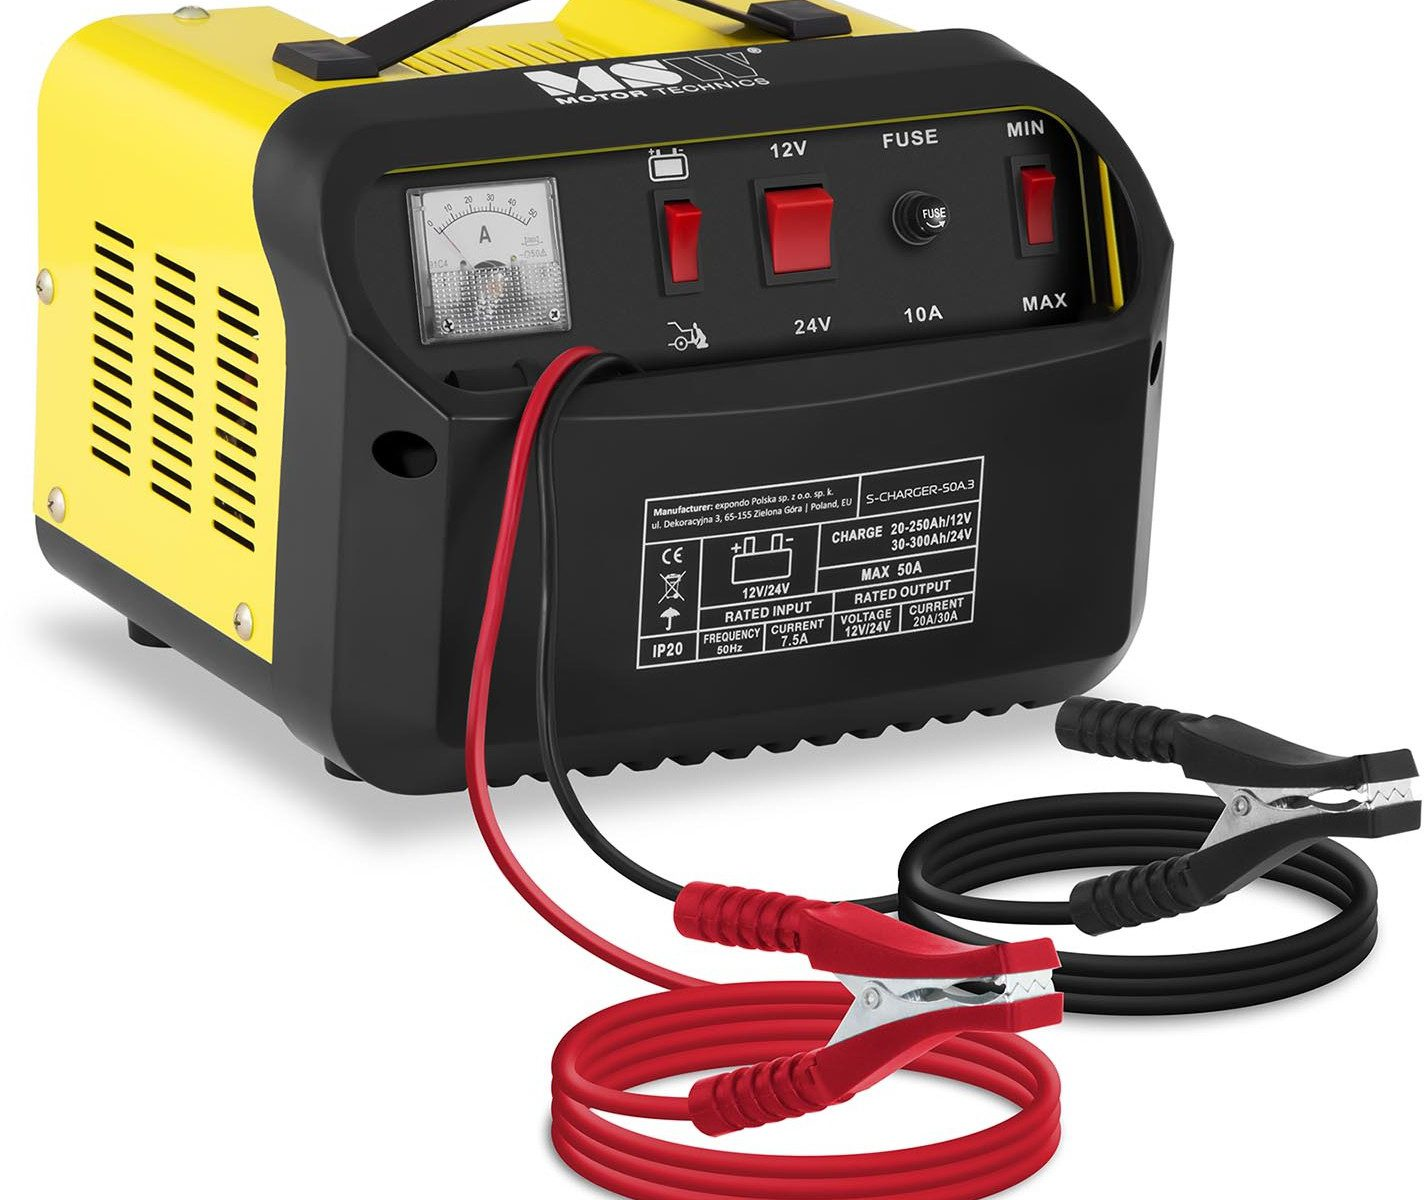 MSW S-CHARGER-50A.3